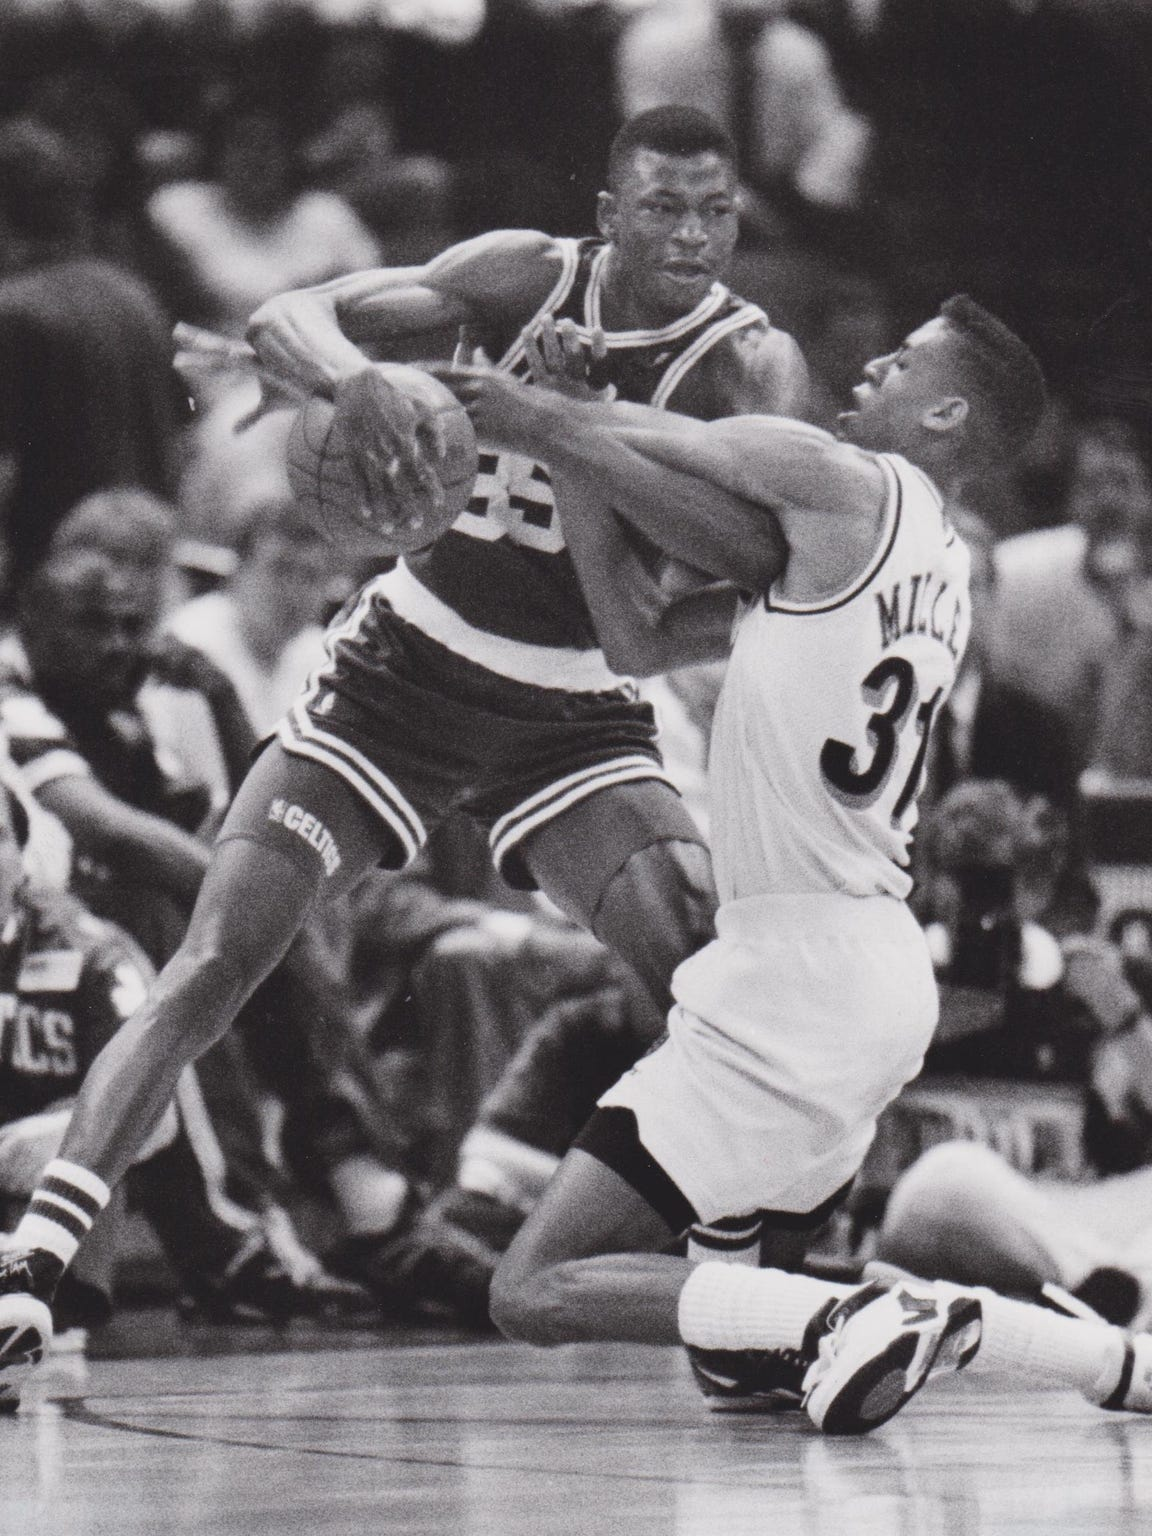 Reggie Miller, right, tries to strip the ball from